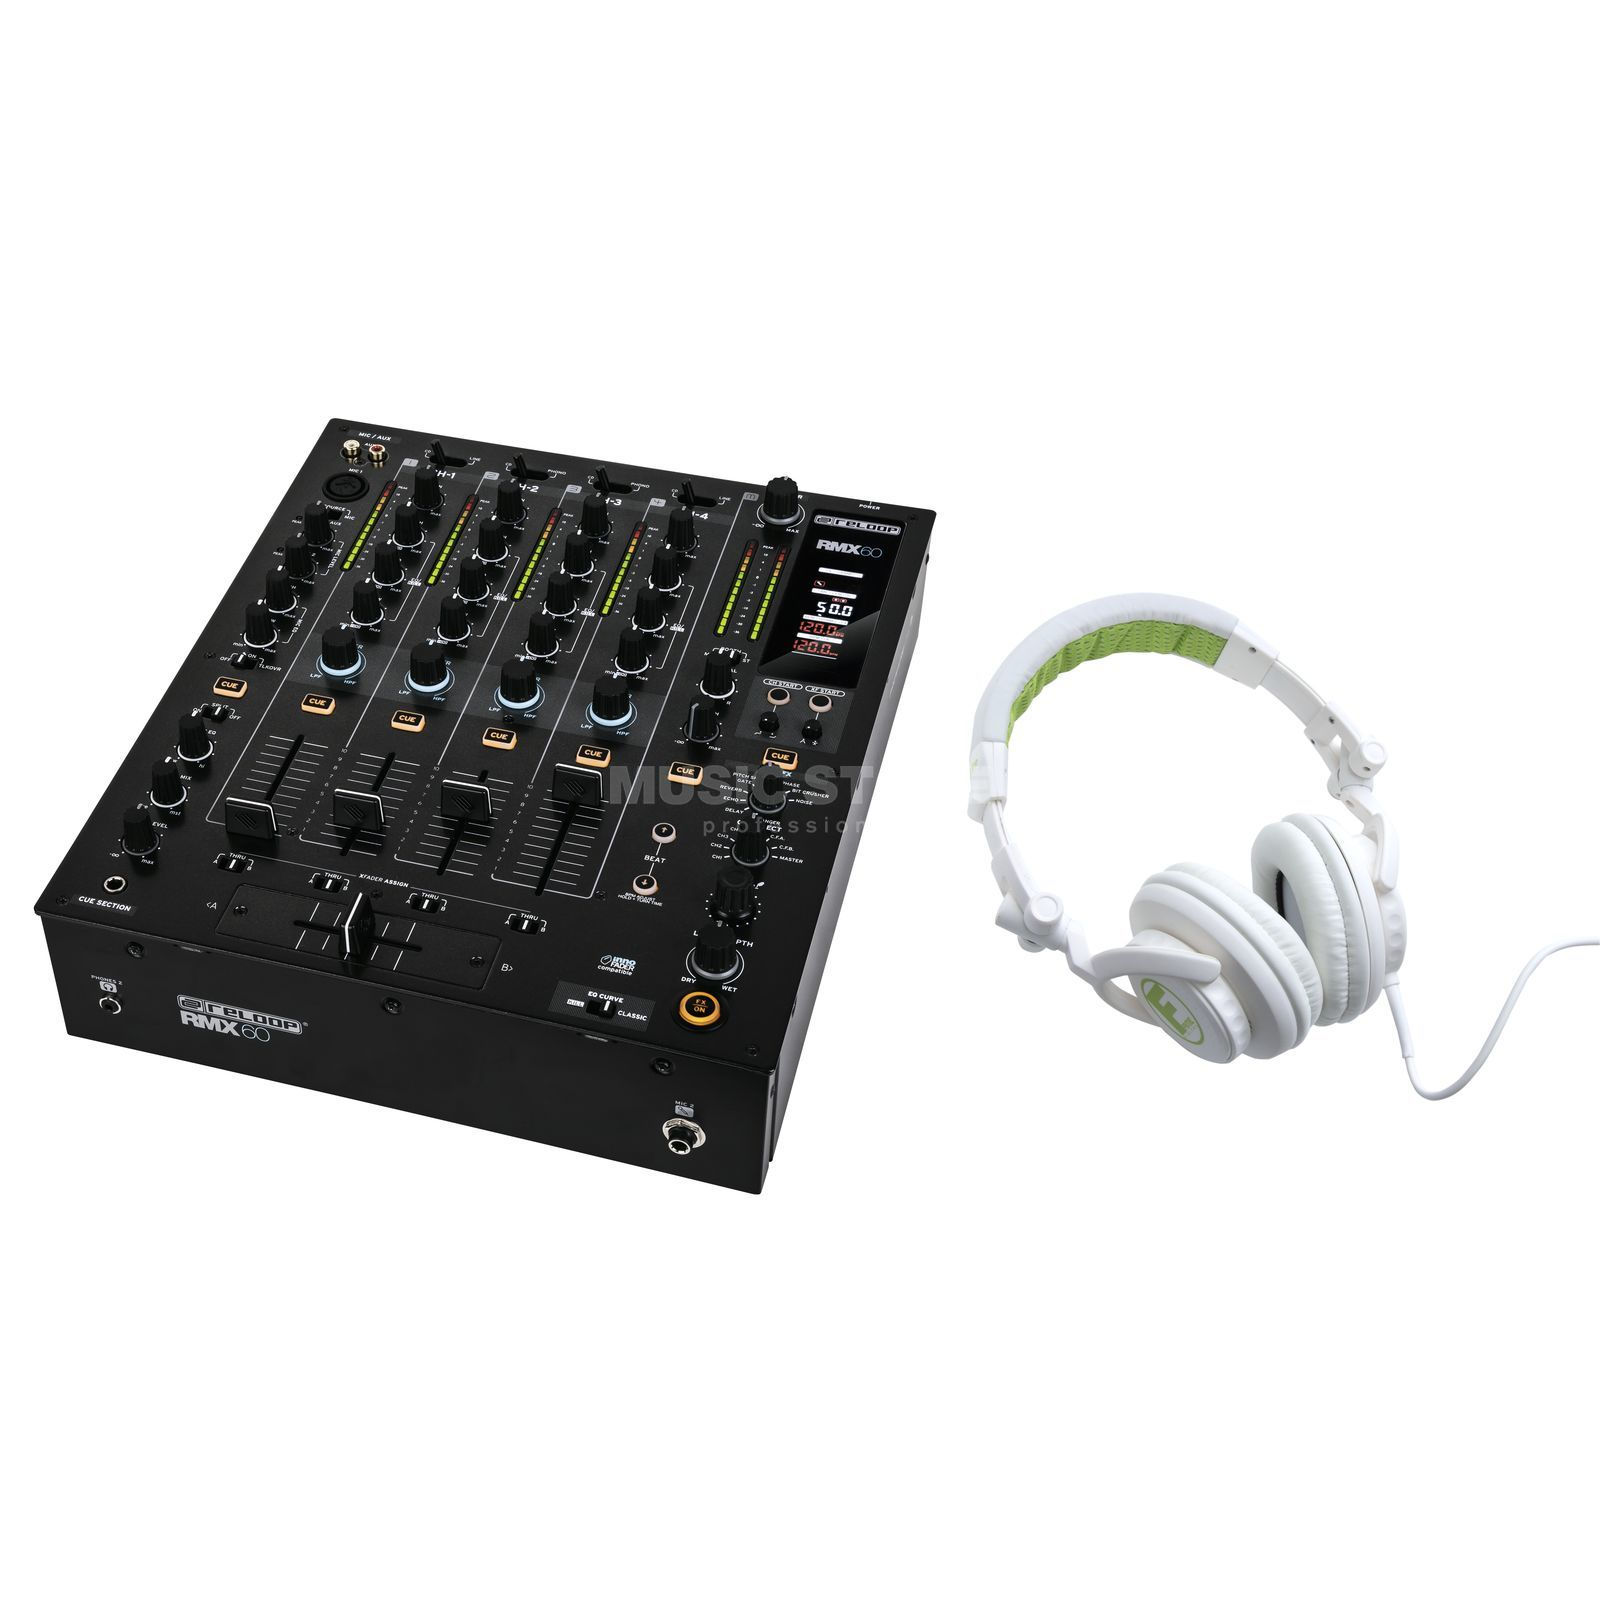 Reloop RMX-60 + hD-1000 lime - Set Produktbild